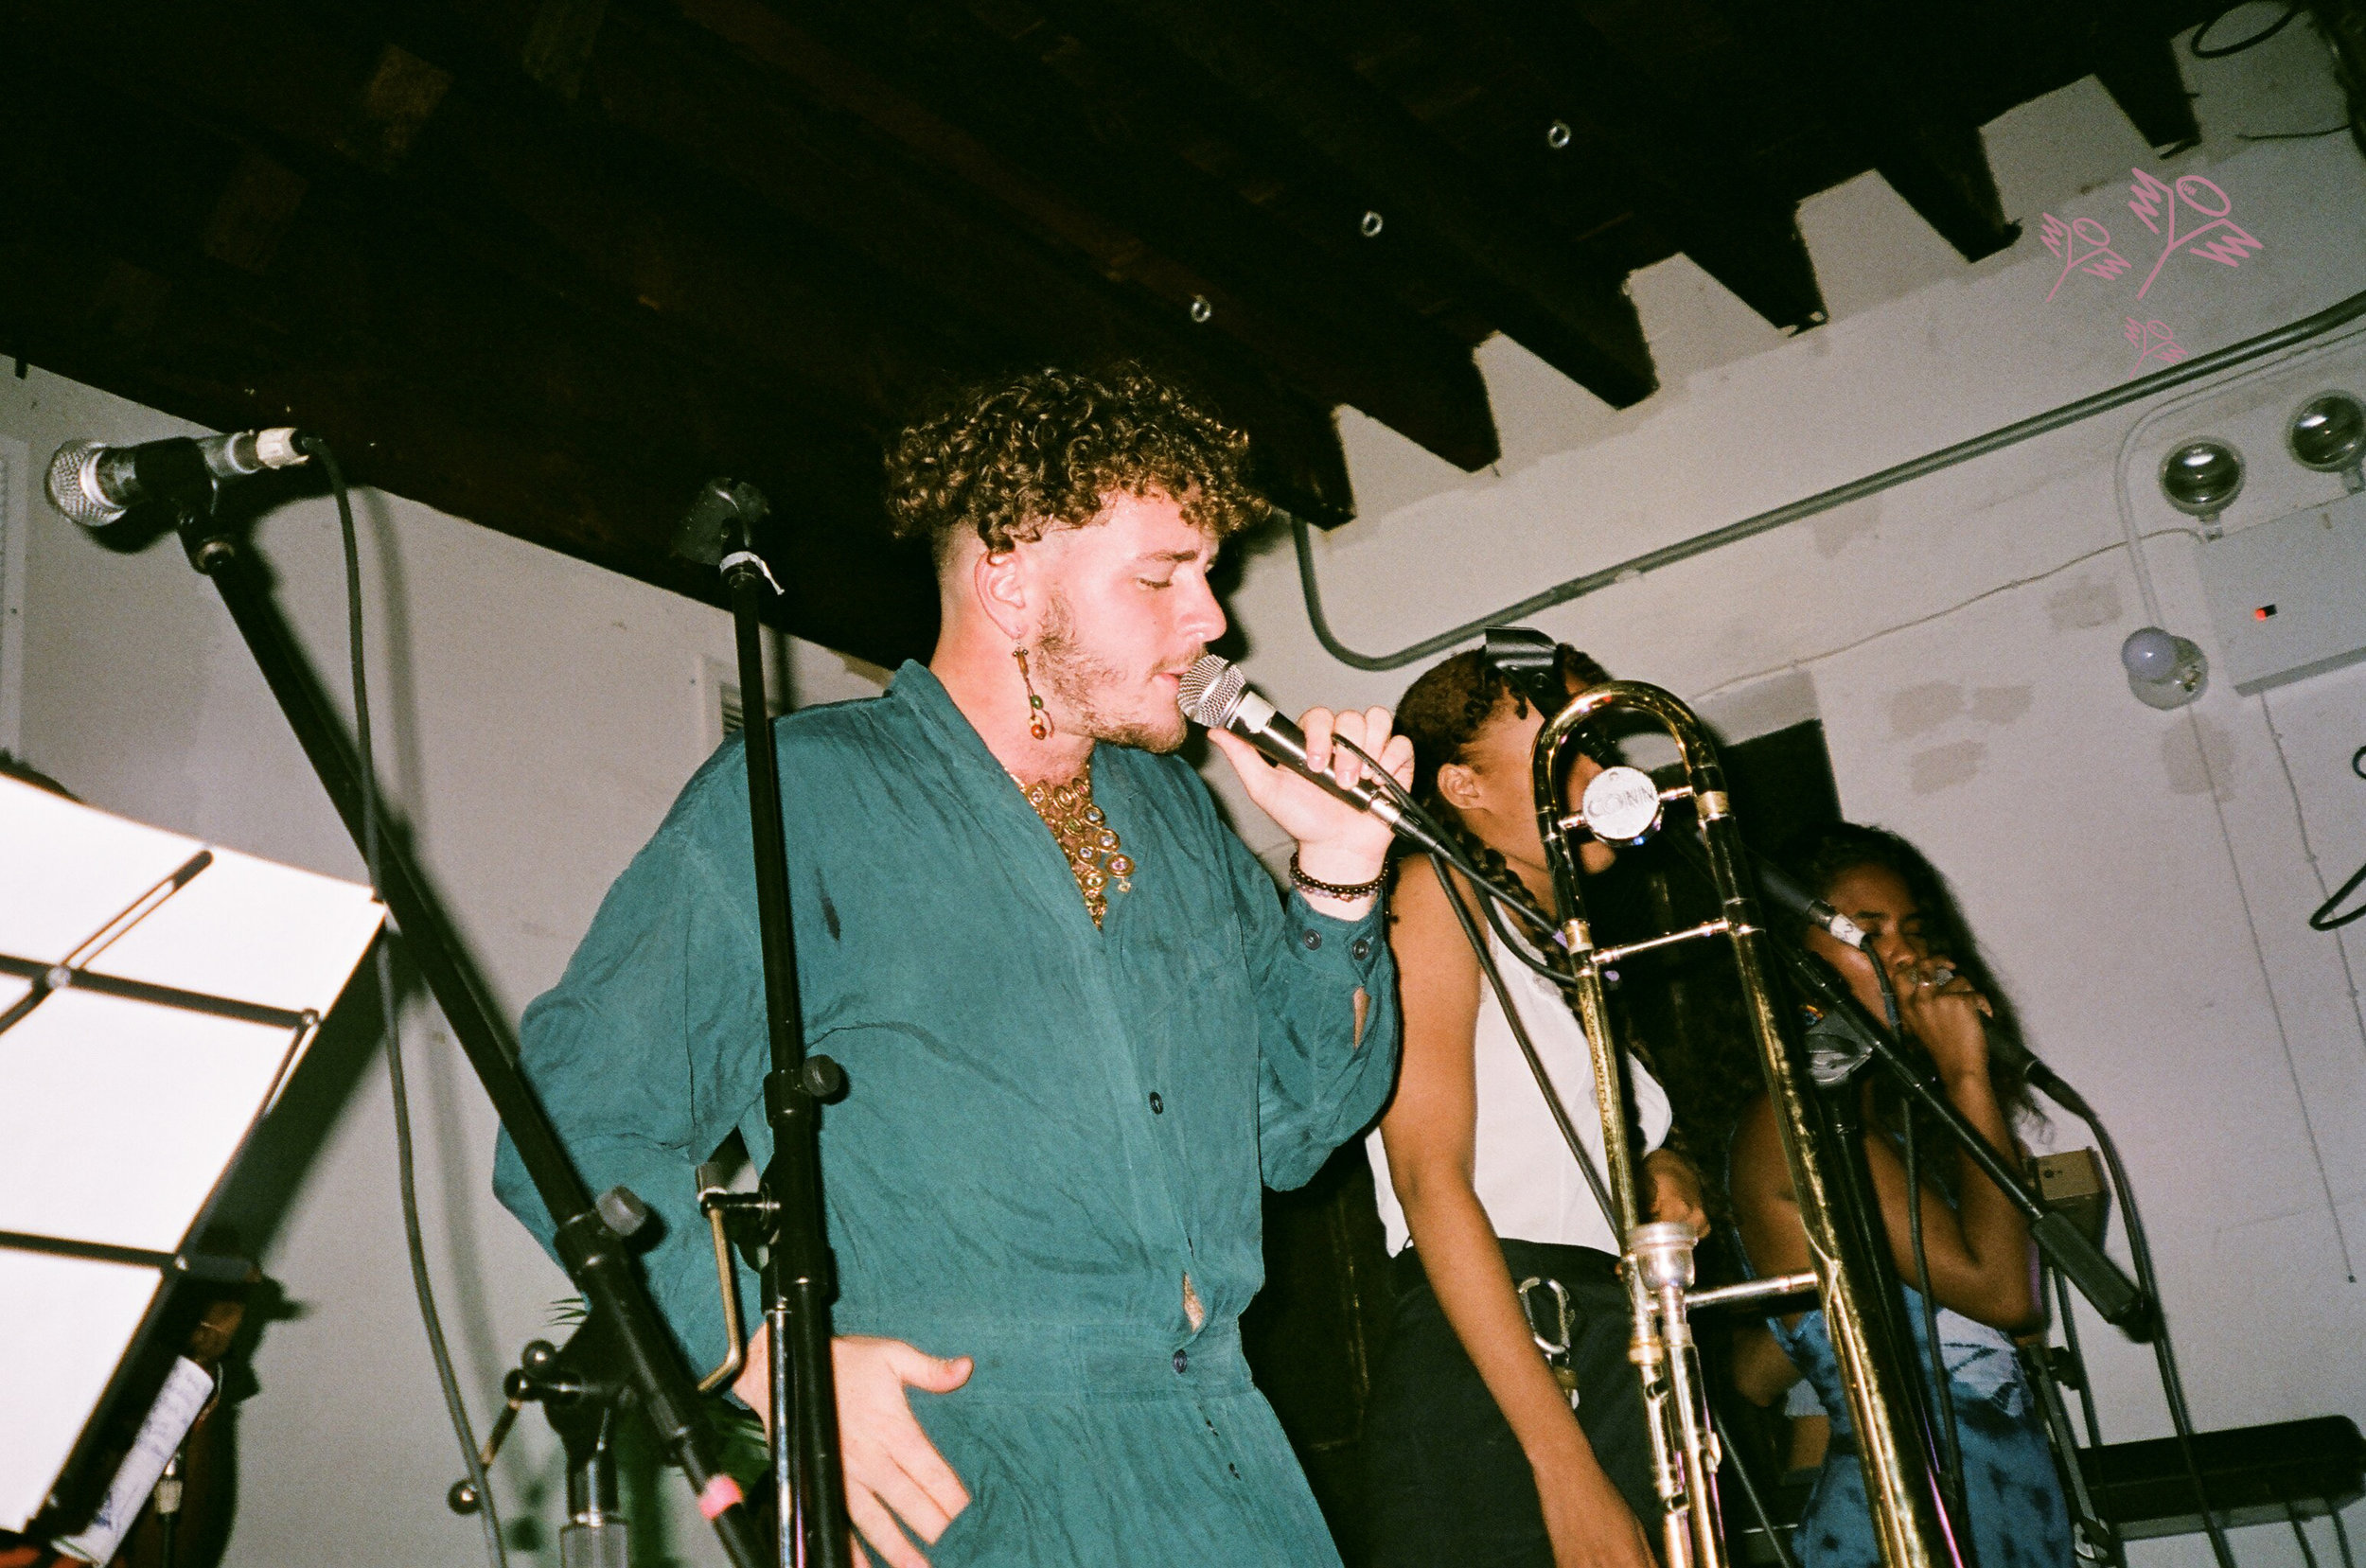 little bear performing at Trans-Pecos in July 2018. - Photos by Yohance Barton